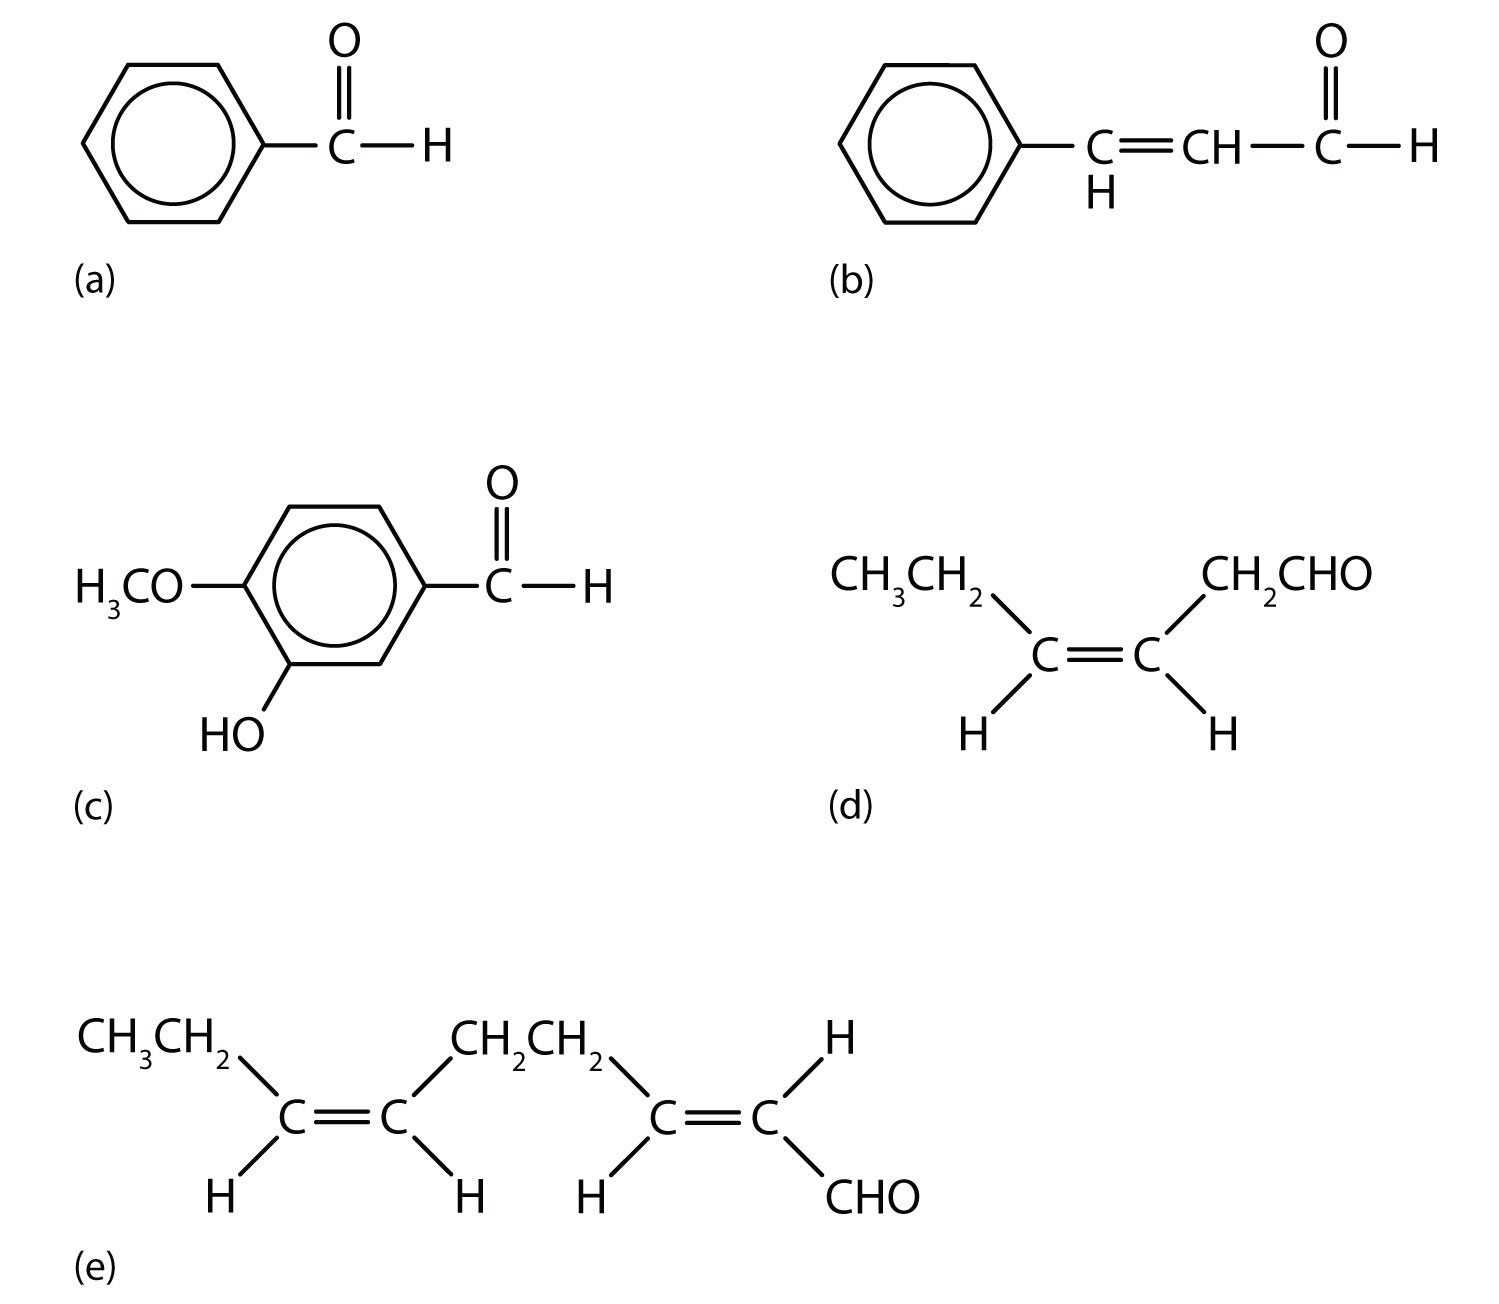 Formula of aldehydes containing benzene rings (a,b c) and cis/trans configuration.